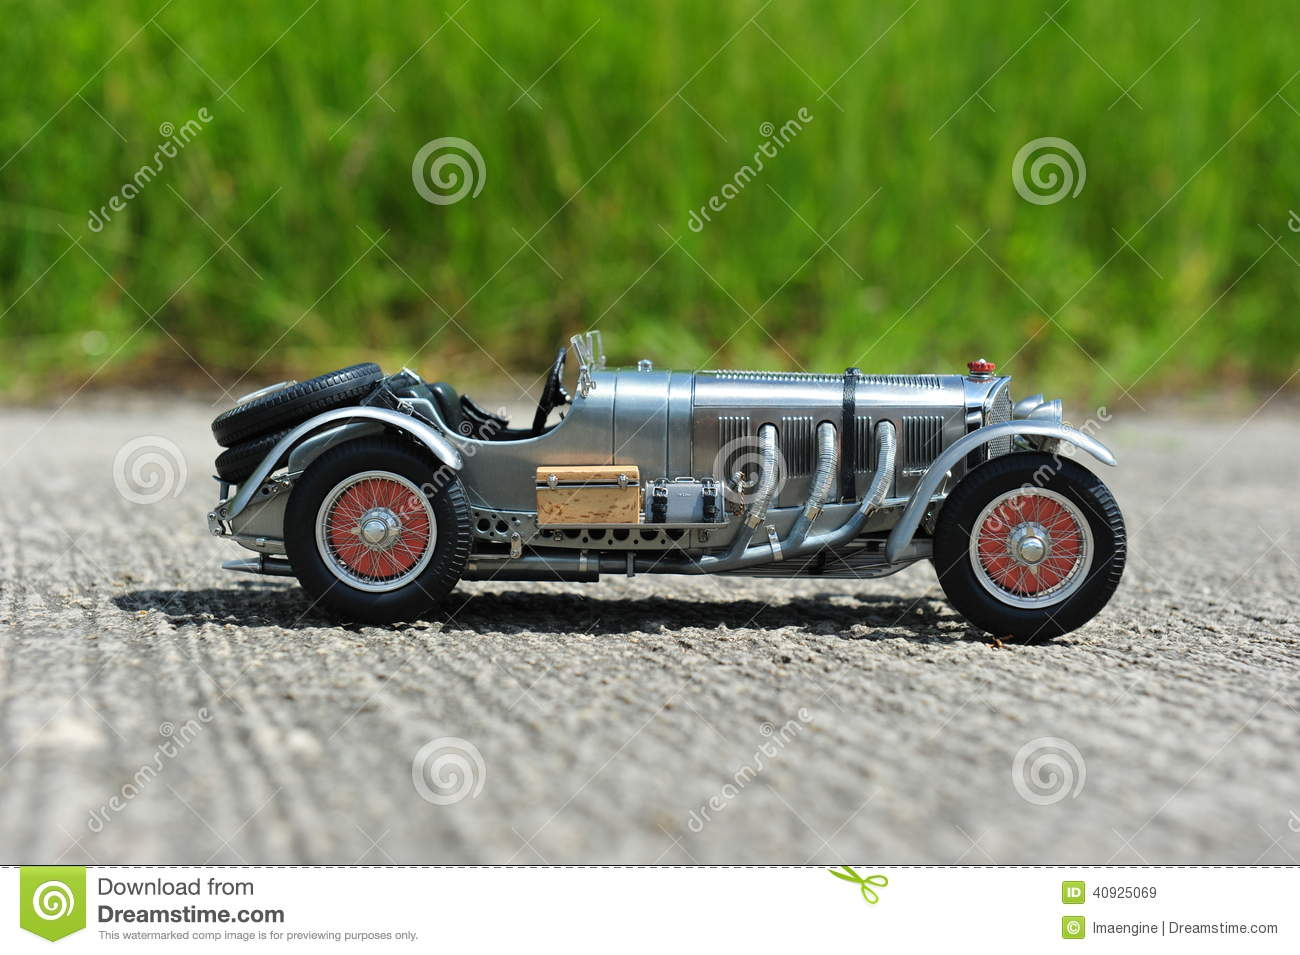 Mercedes-Benz SSKL Retro Racing Car - Right Side View Stock Image ...